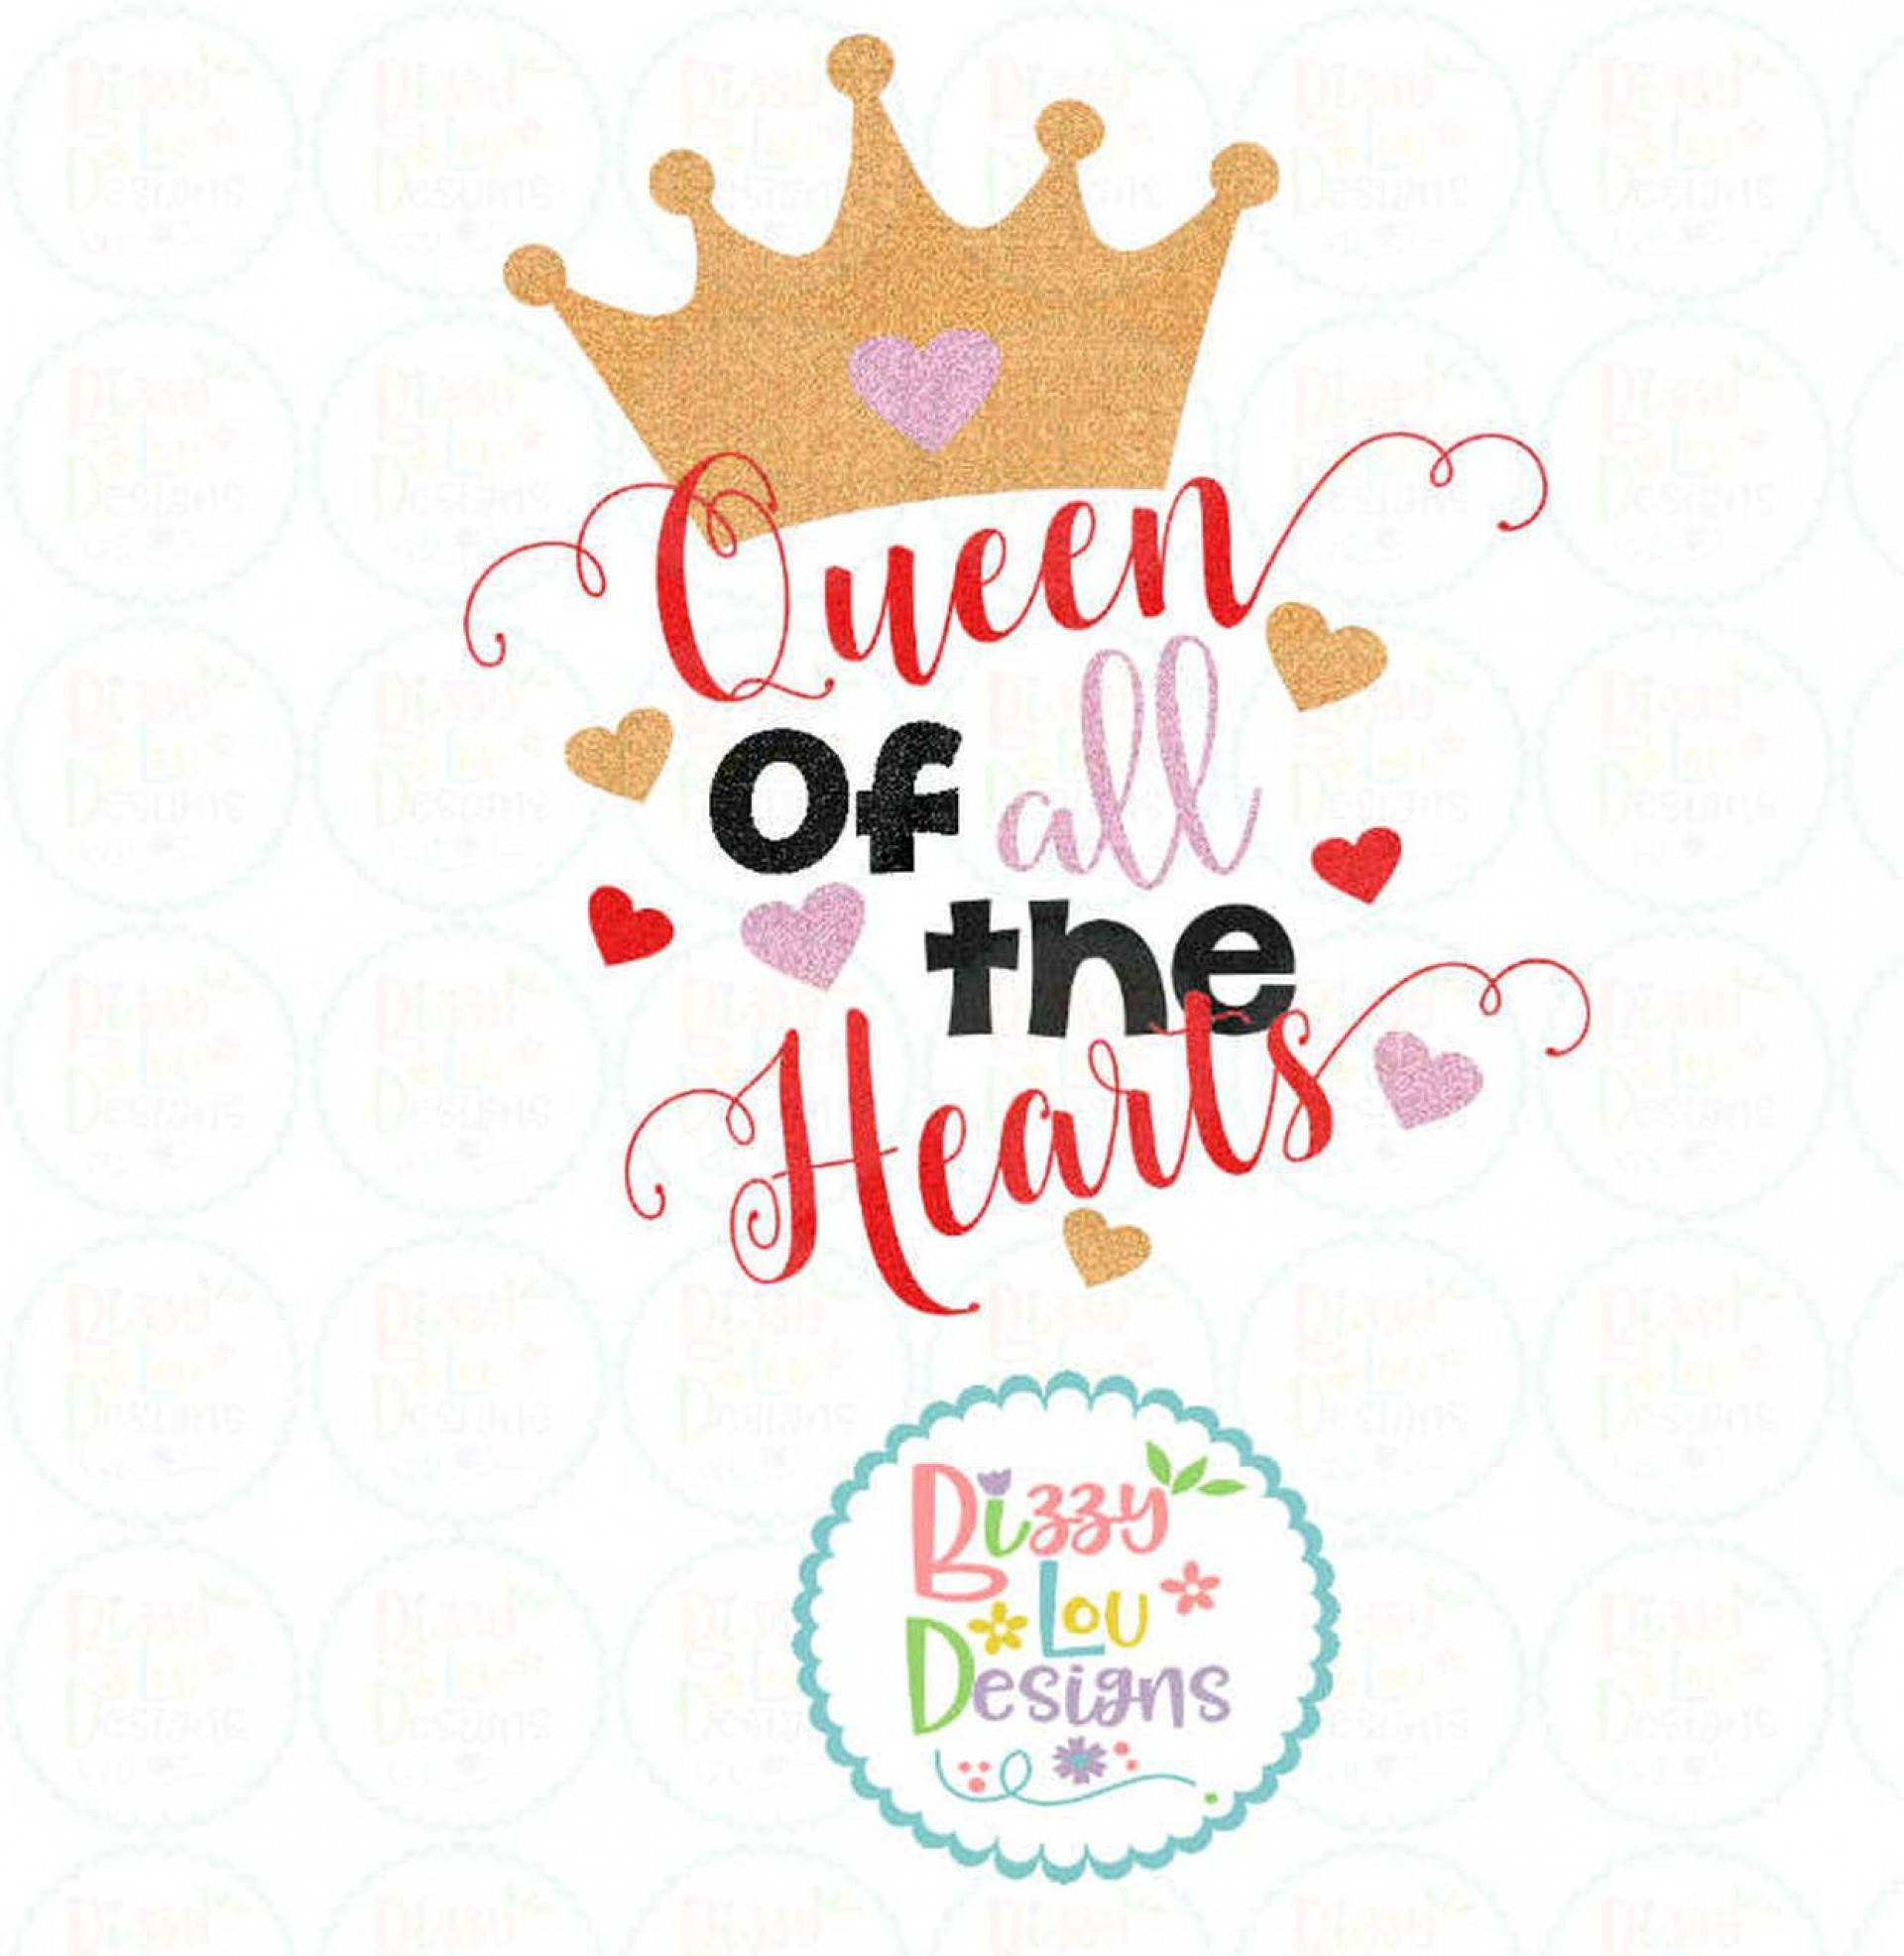 009 Fascinating Queen Of Heart Crown Printable Example  Template1920